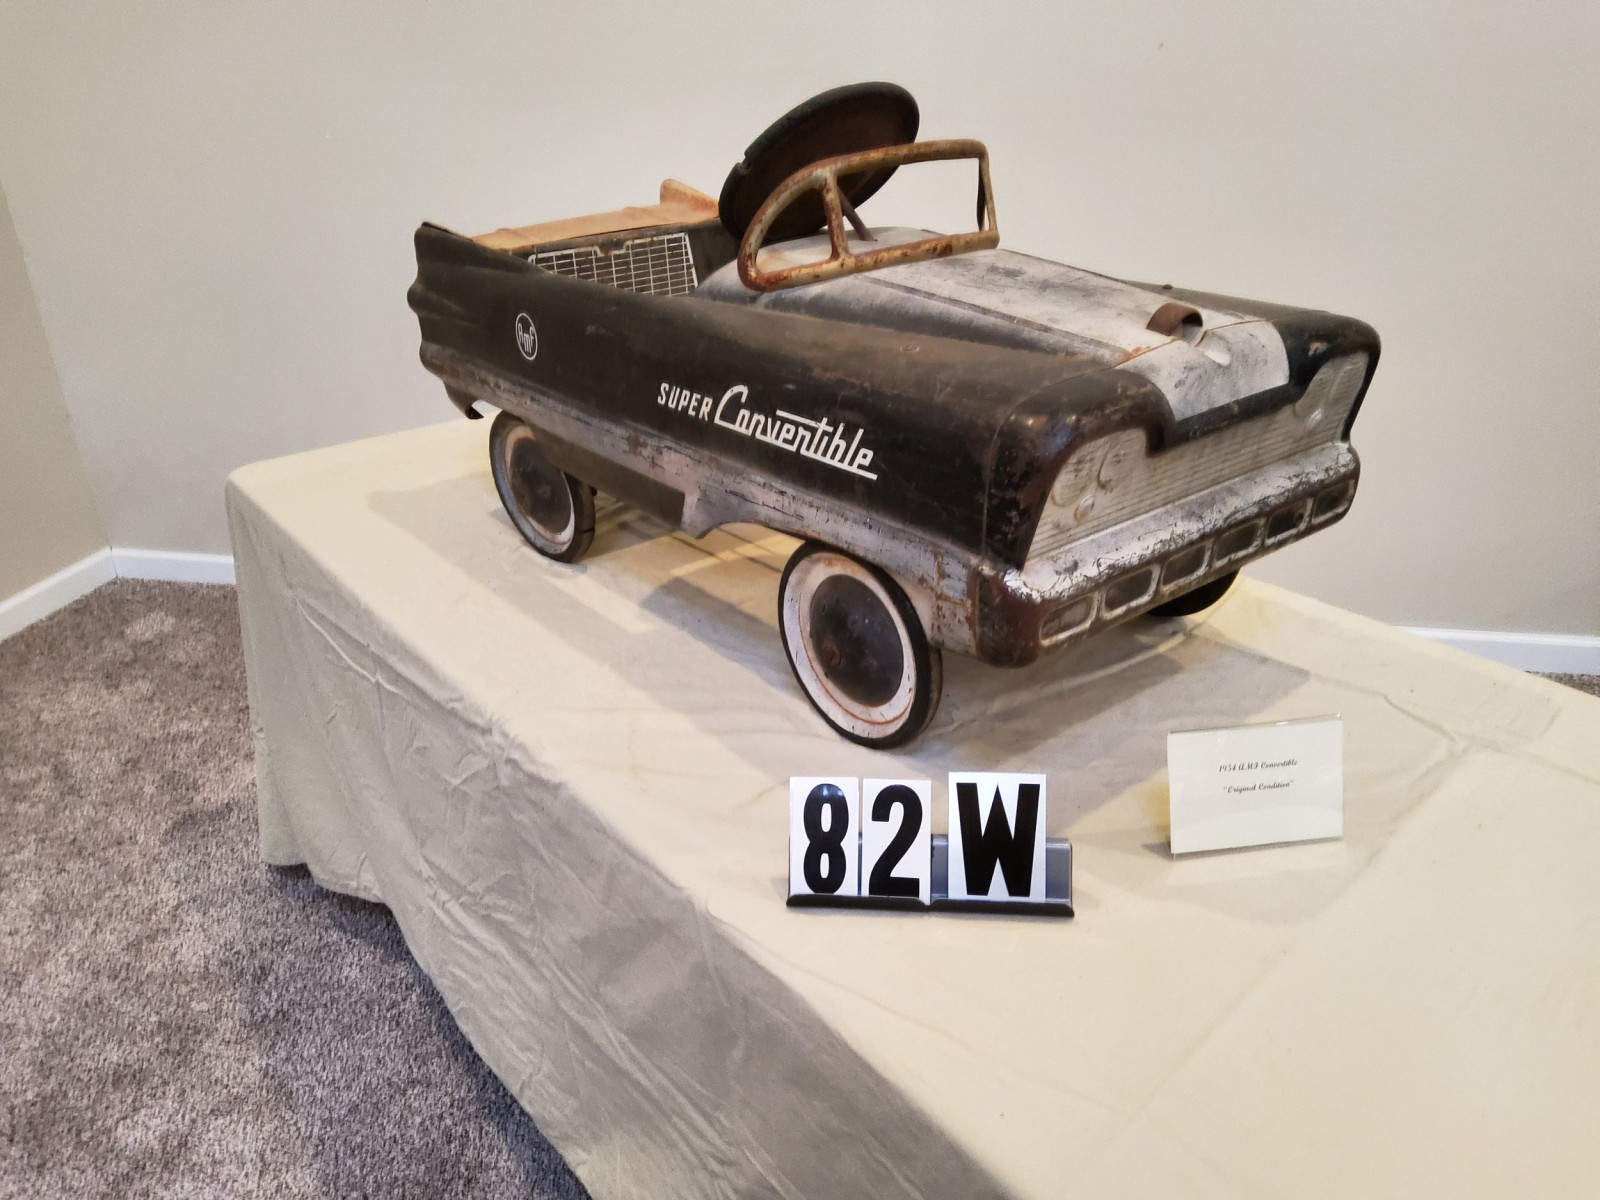 1954 AMF Super Convertible Pedal Car - Image 1